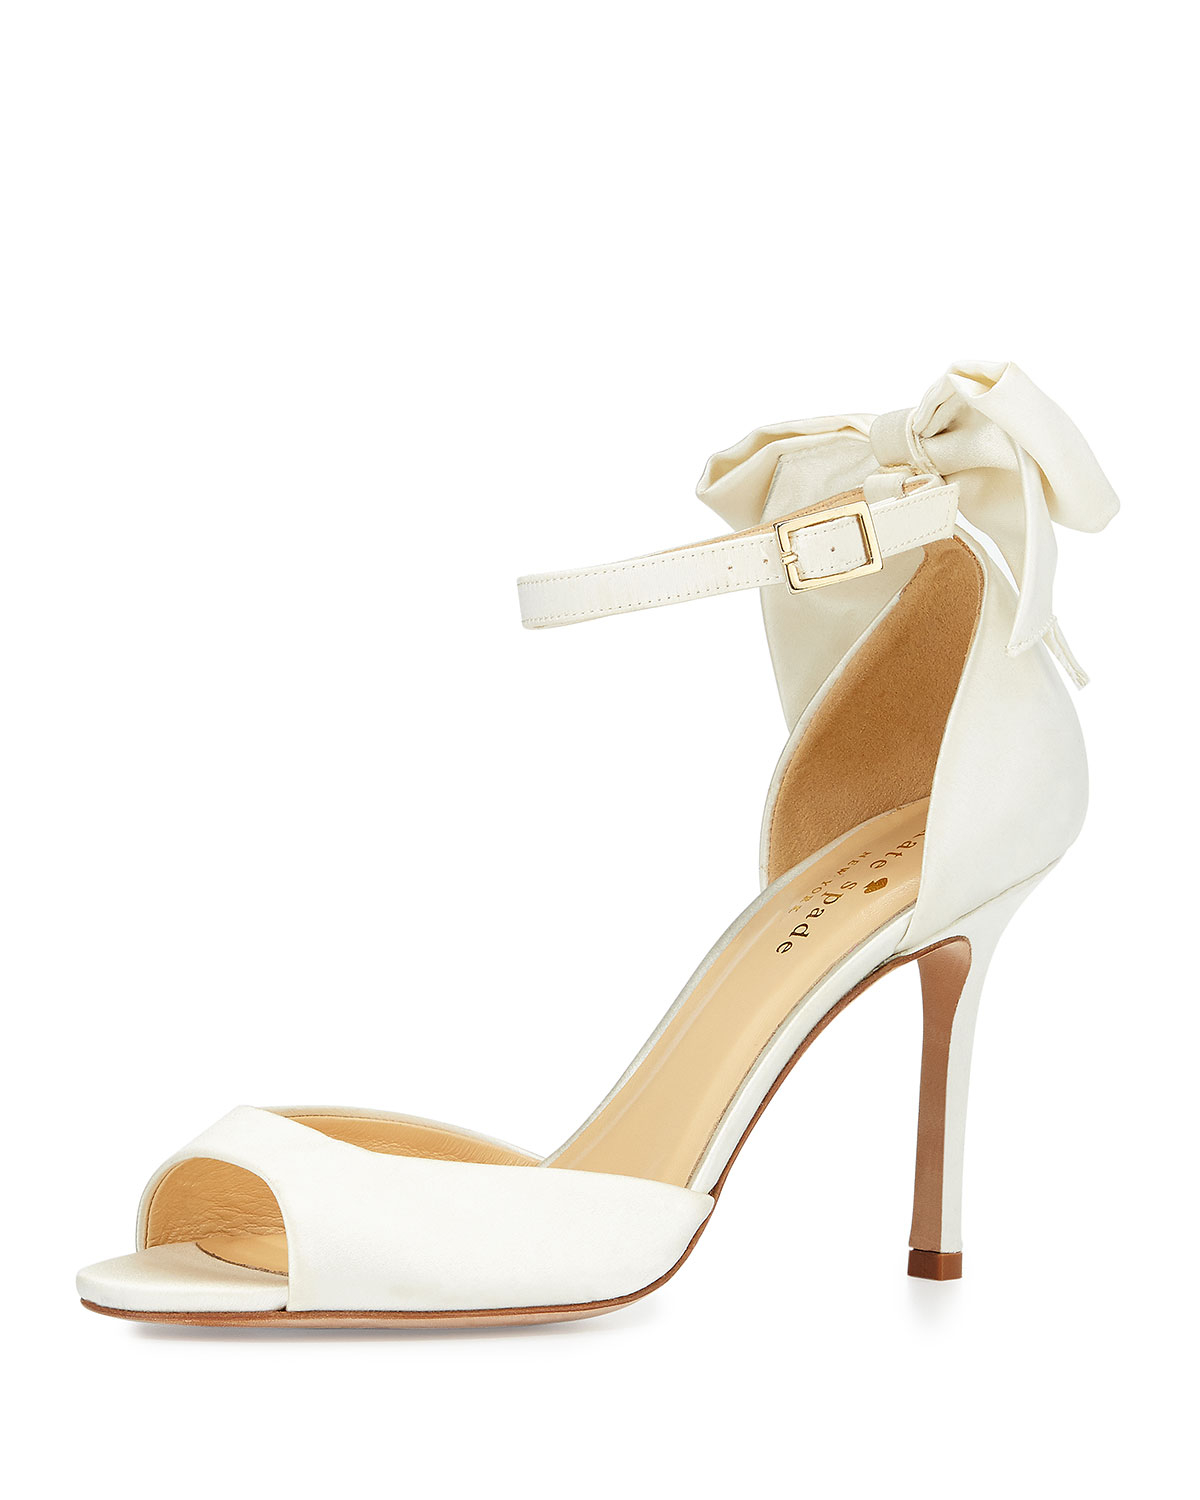 Kate spade izzie bow back satin d orsay pump in white ivory lyst